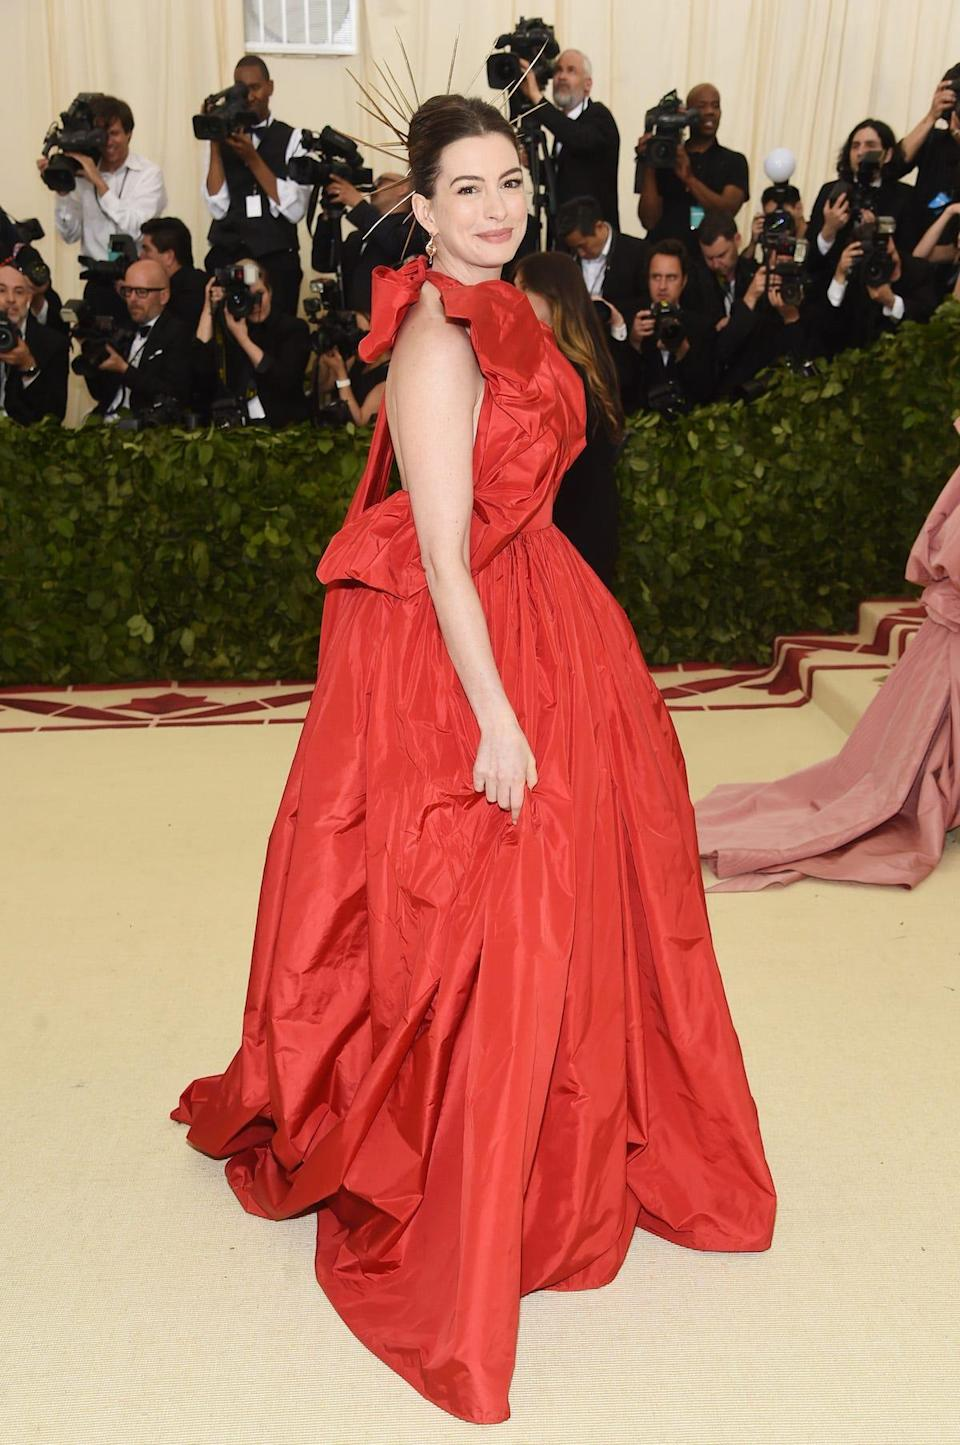 Anne Hathaway attends the Met Gala 2018